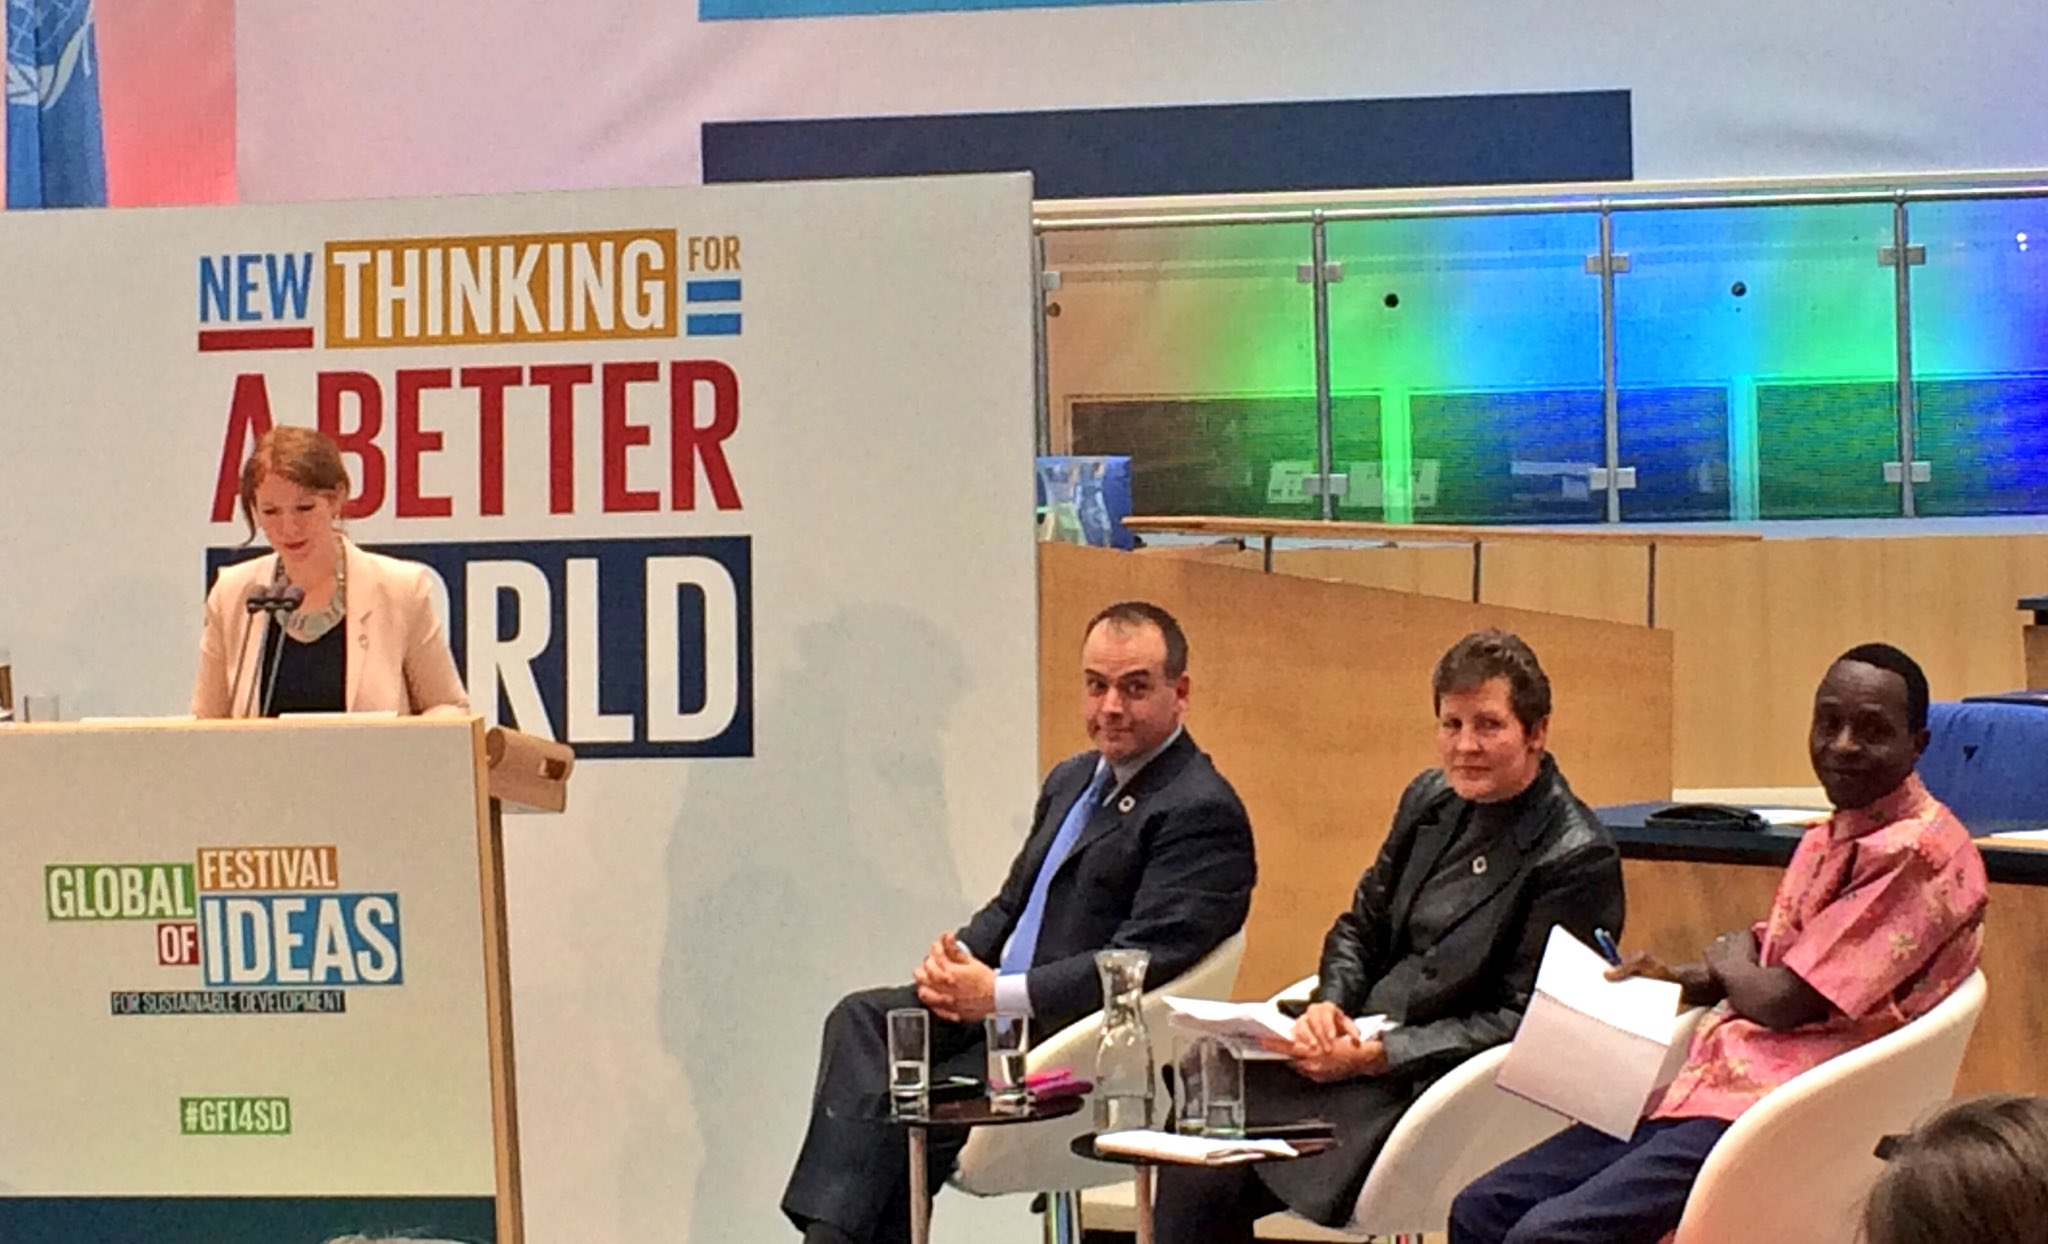 'We've all come together around a common goal... how can we ensure a sustainable world for our future?' Asks Sarah Poole @UNDP #GFI4SD https://t.co/4AWO2dkQck